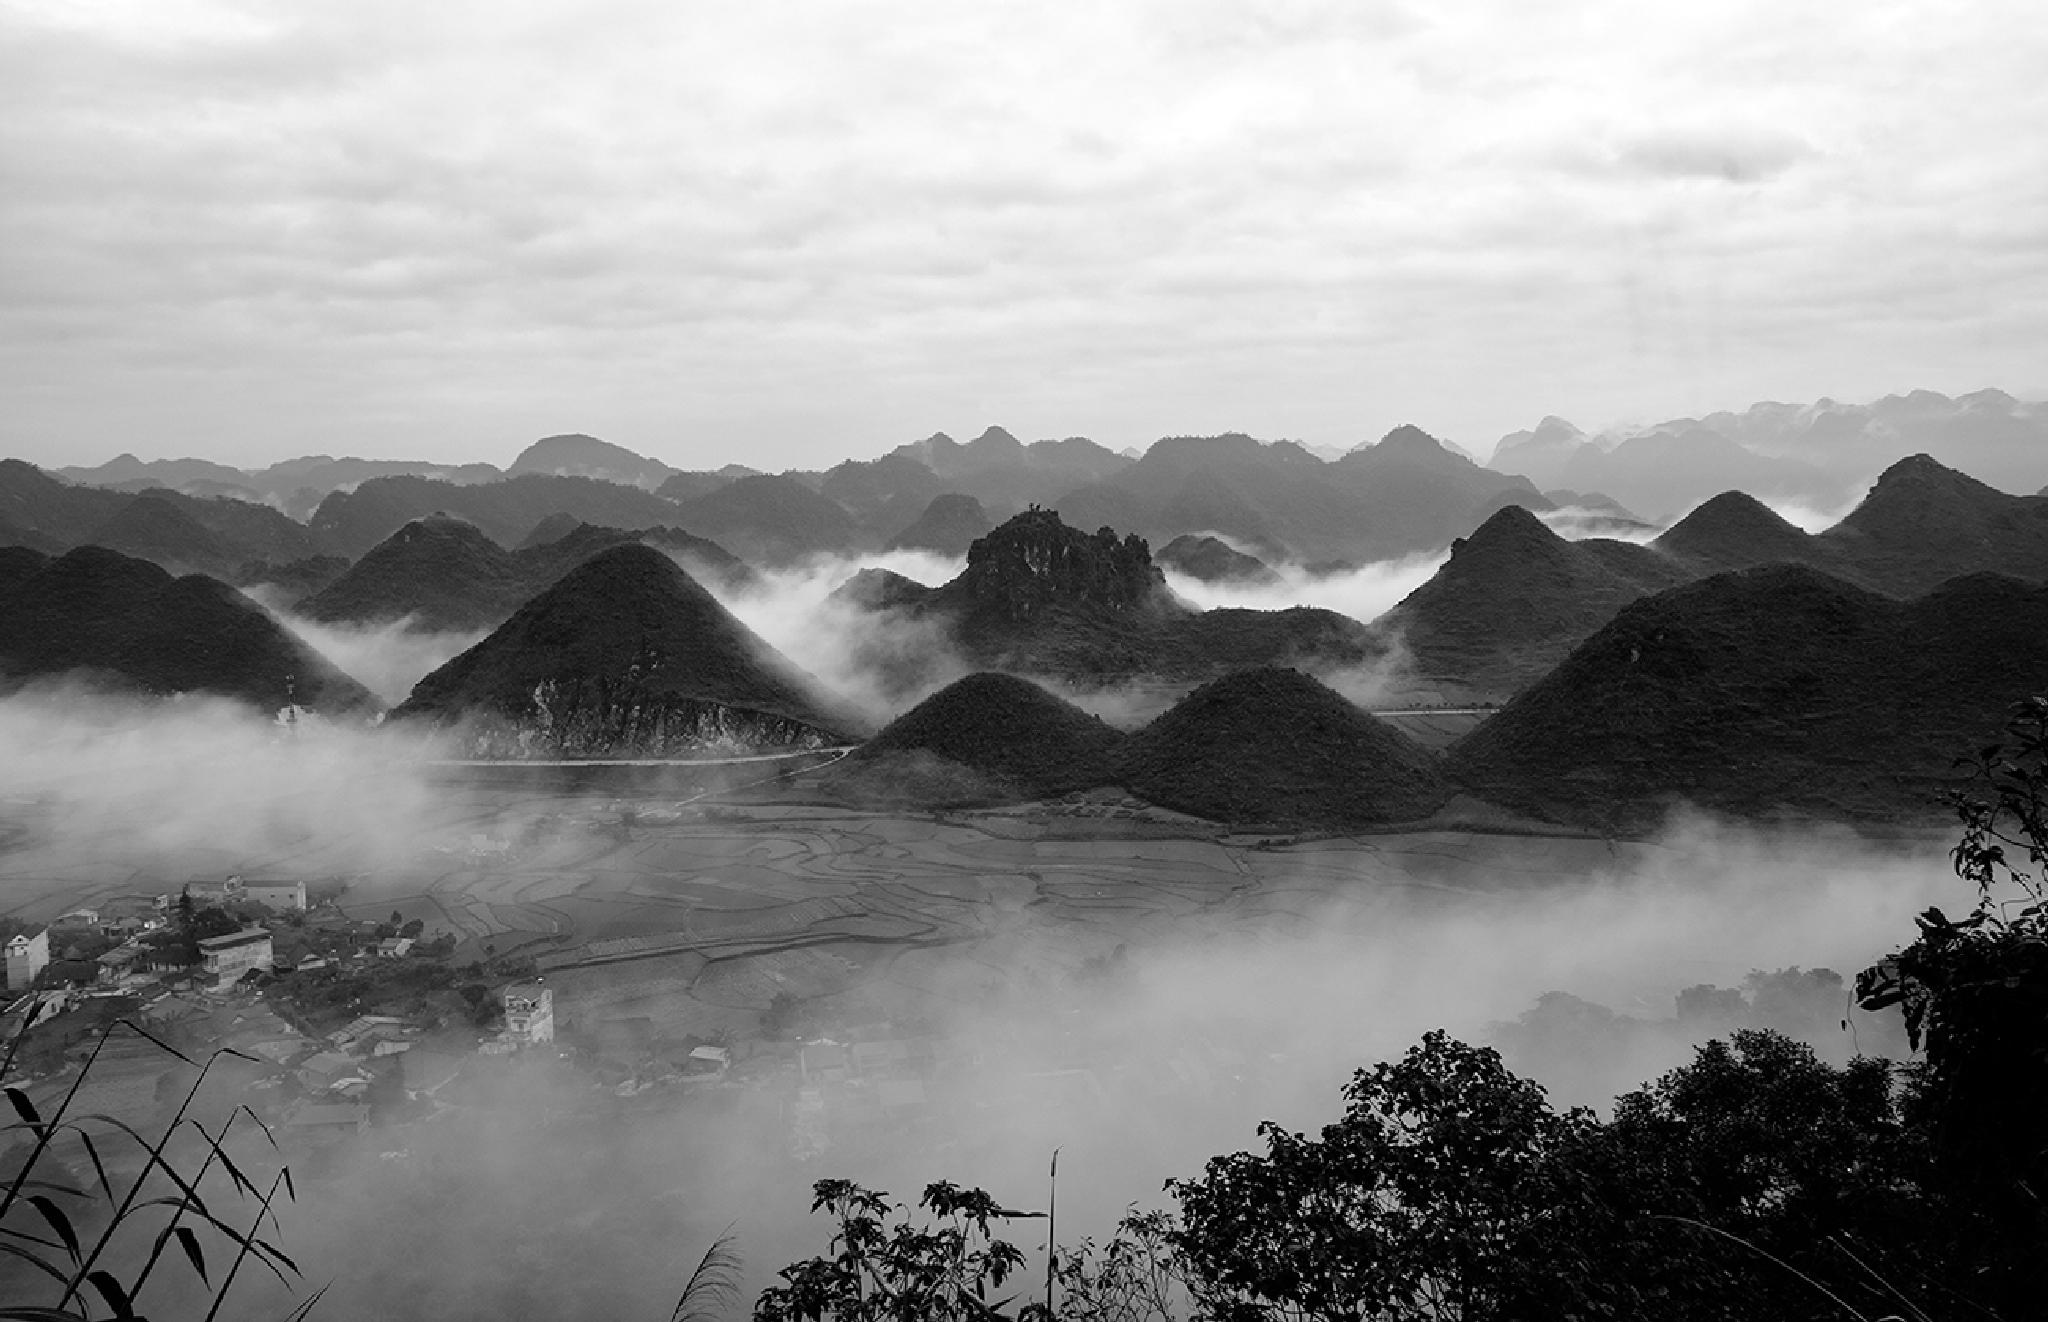 The Valley Cloud of Tam Son, Ha Giang by kienhoangmineral